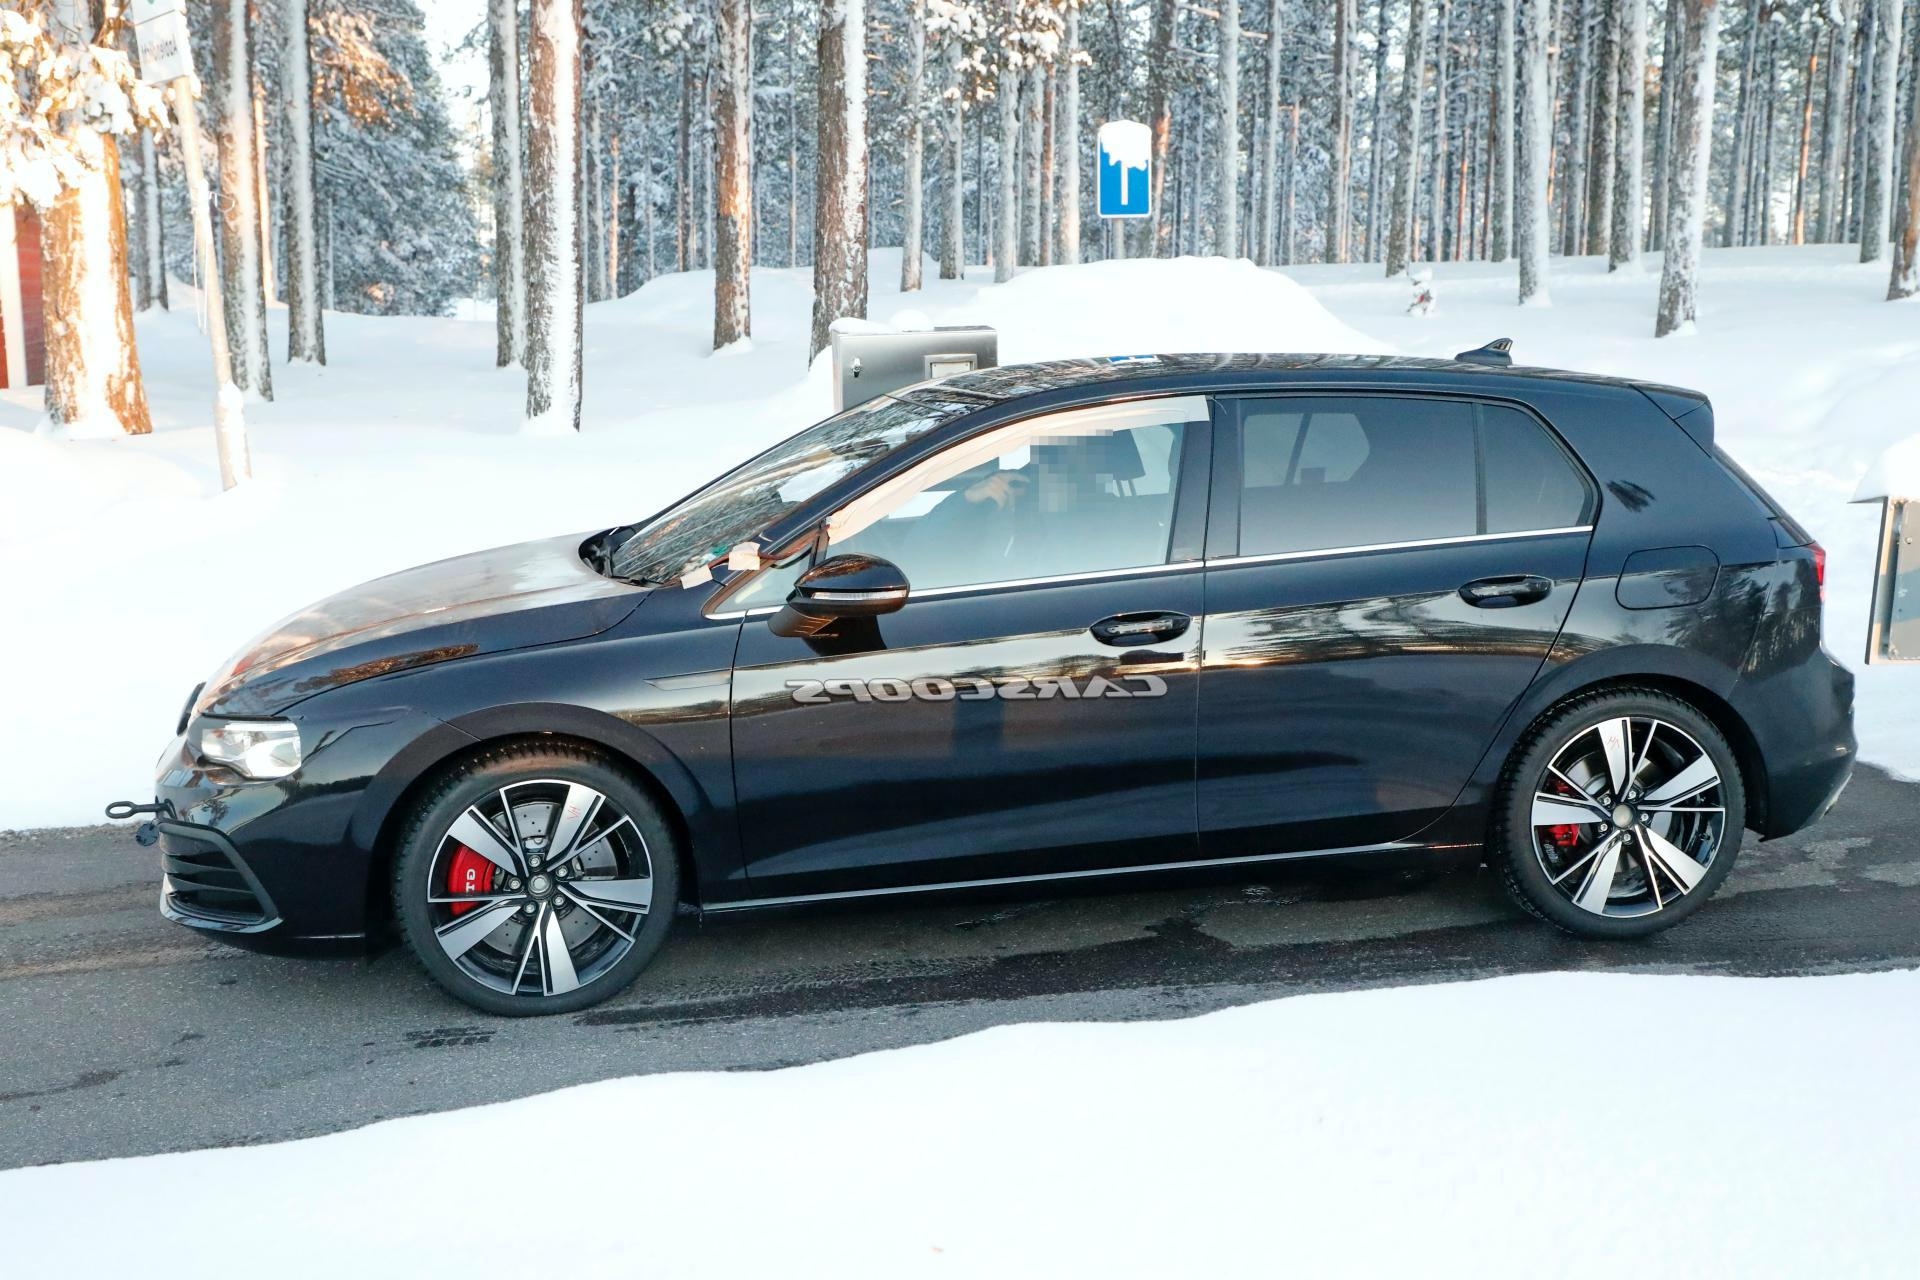 2021 Vw Golf Gti: Is This An Early Prototype For Hardcore